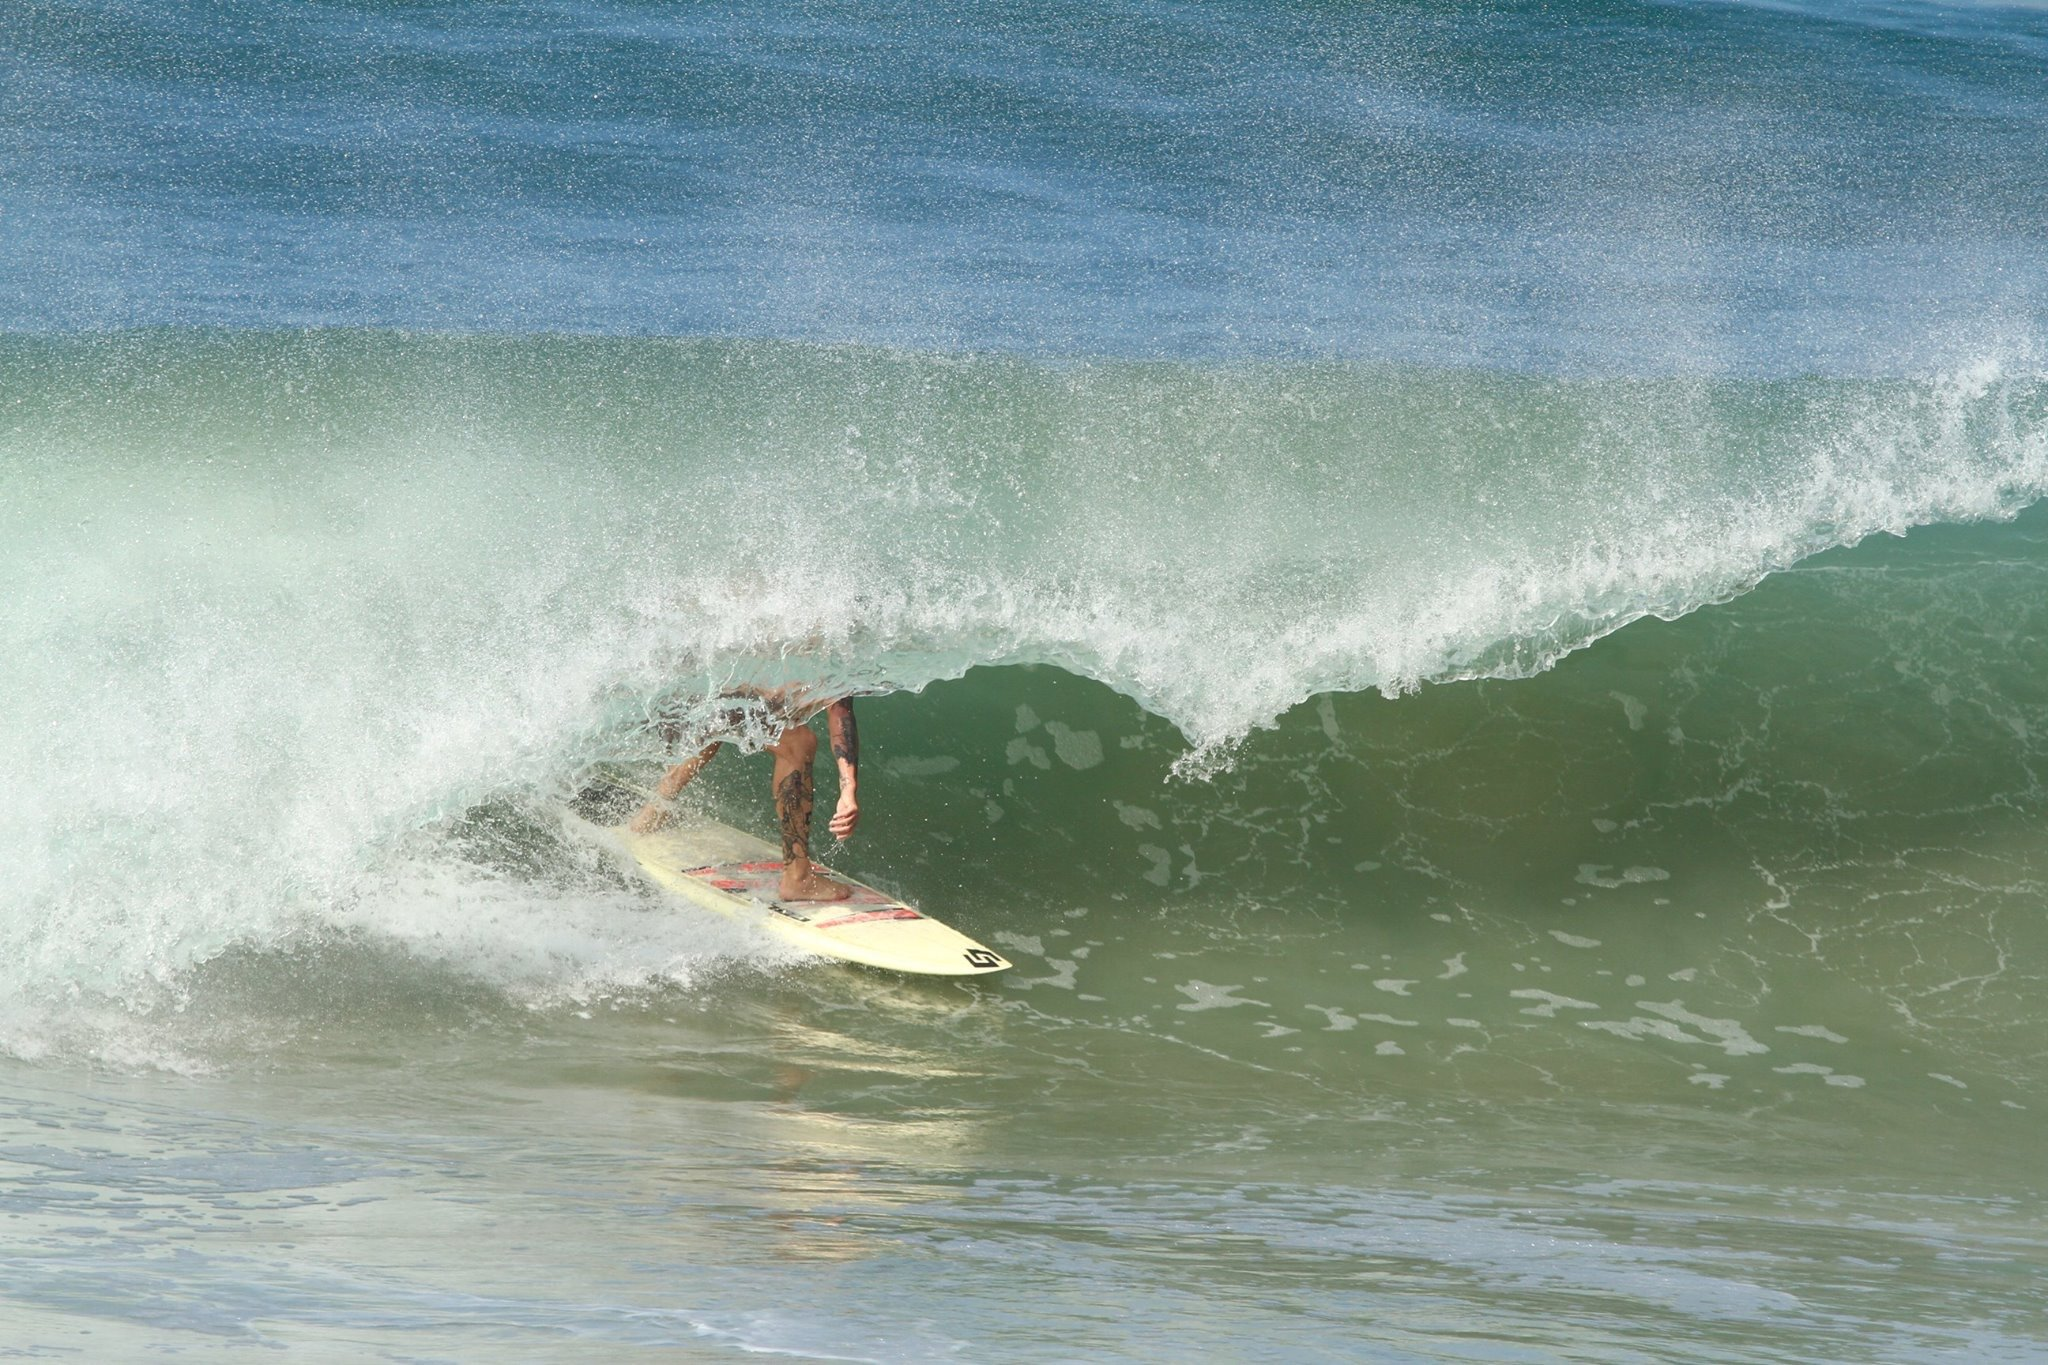 Private Surf Guides San Clemente Surfboard Rentals Private Surfing Lessons Surf School